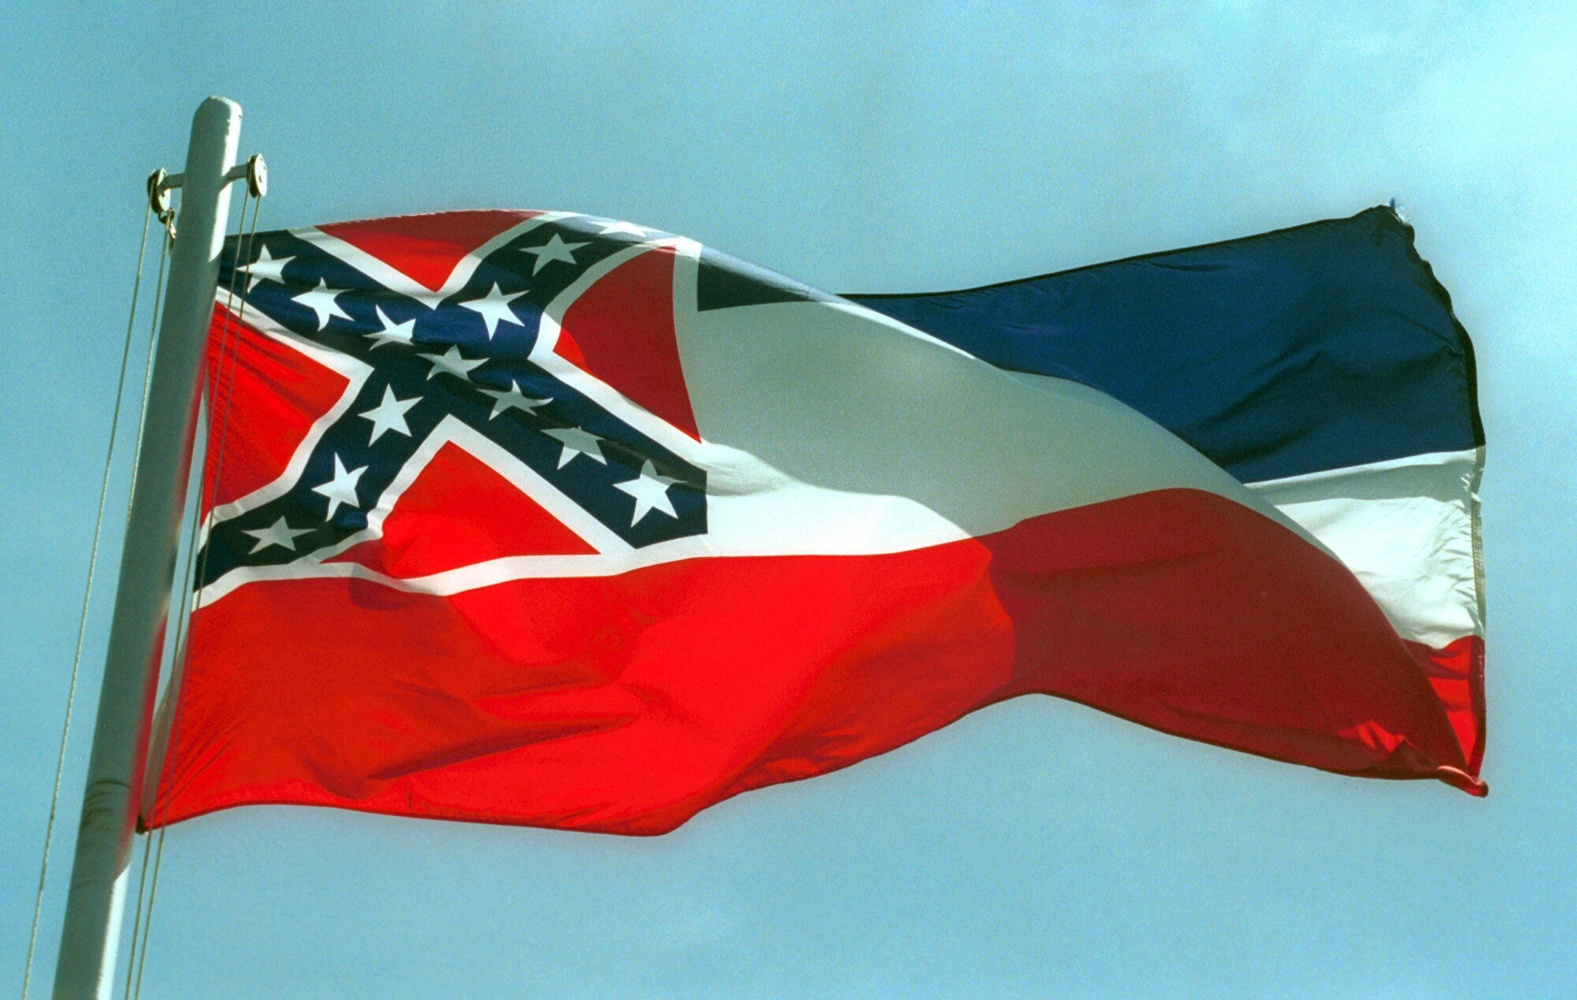 Supreme Court rejects suit over Mississippi flag Confederate